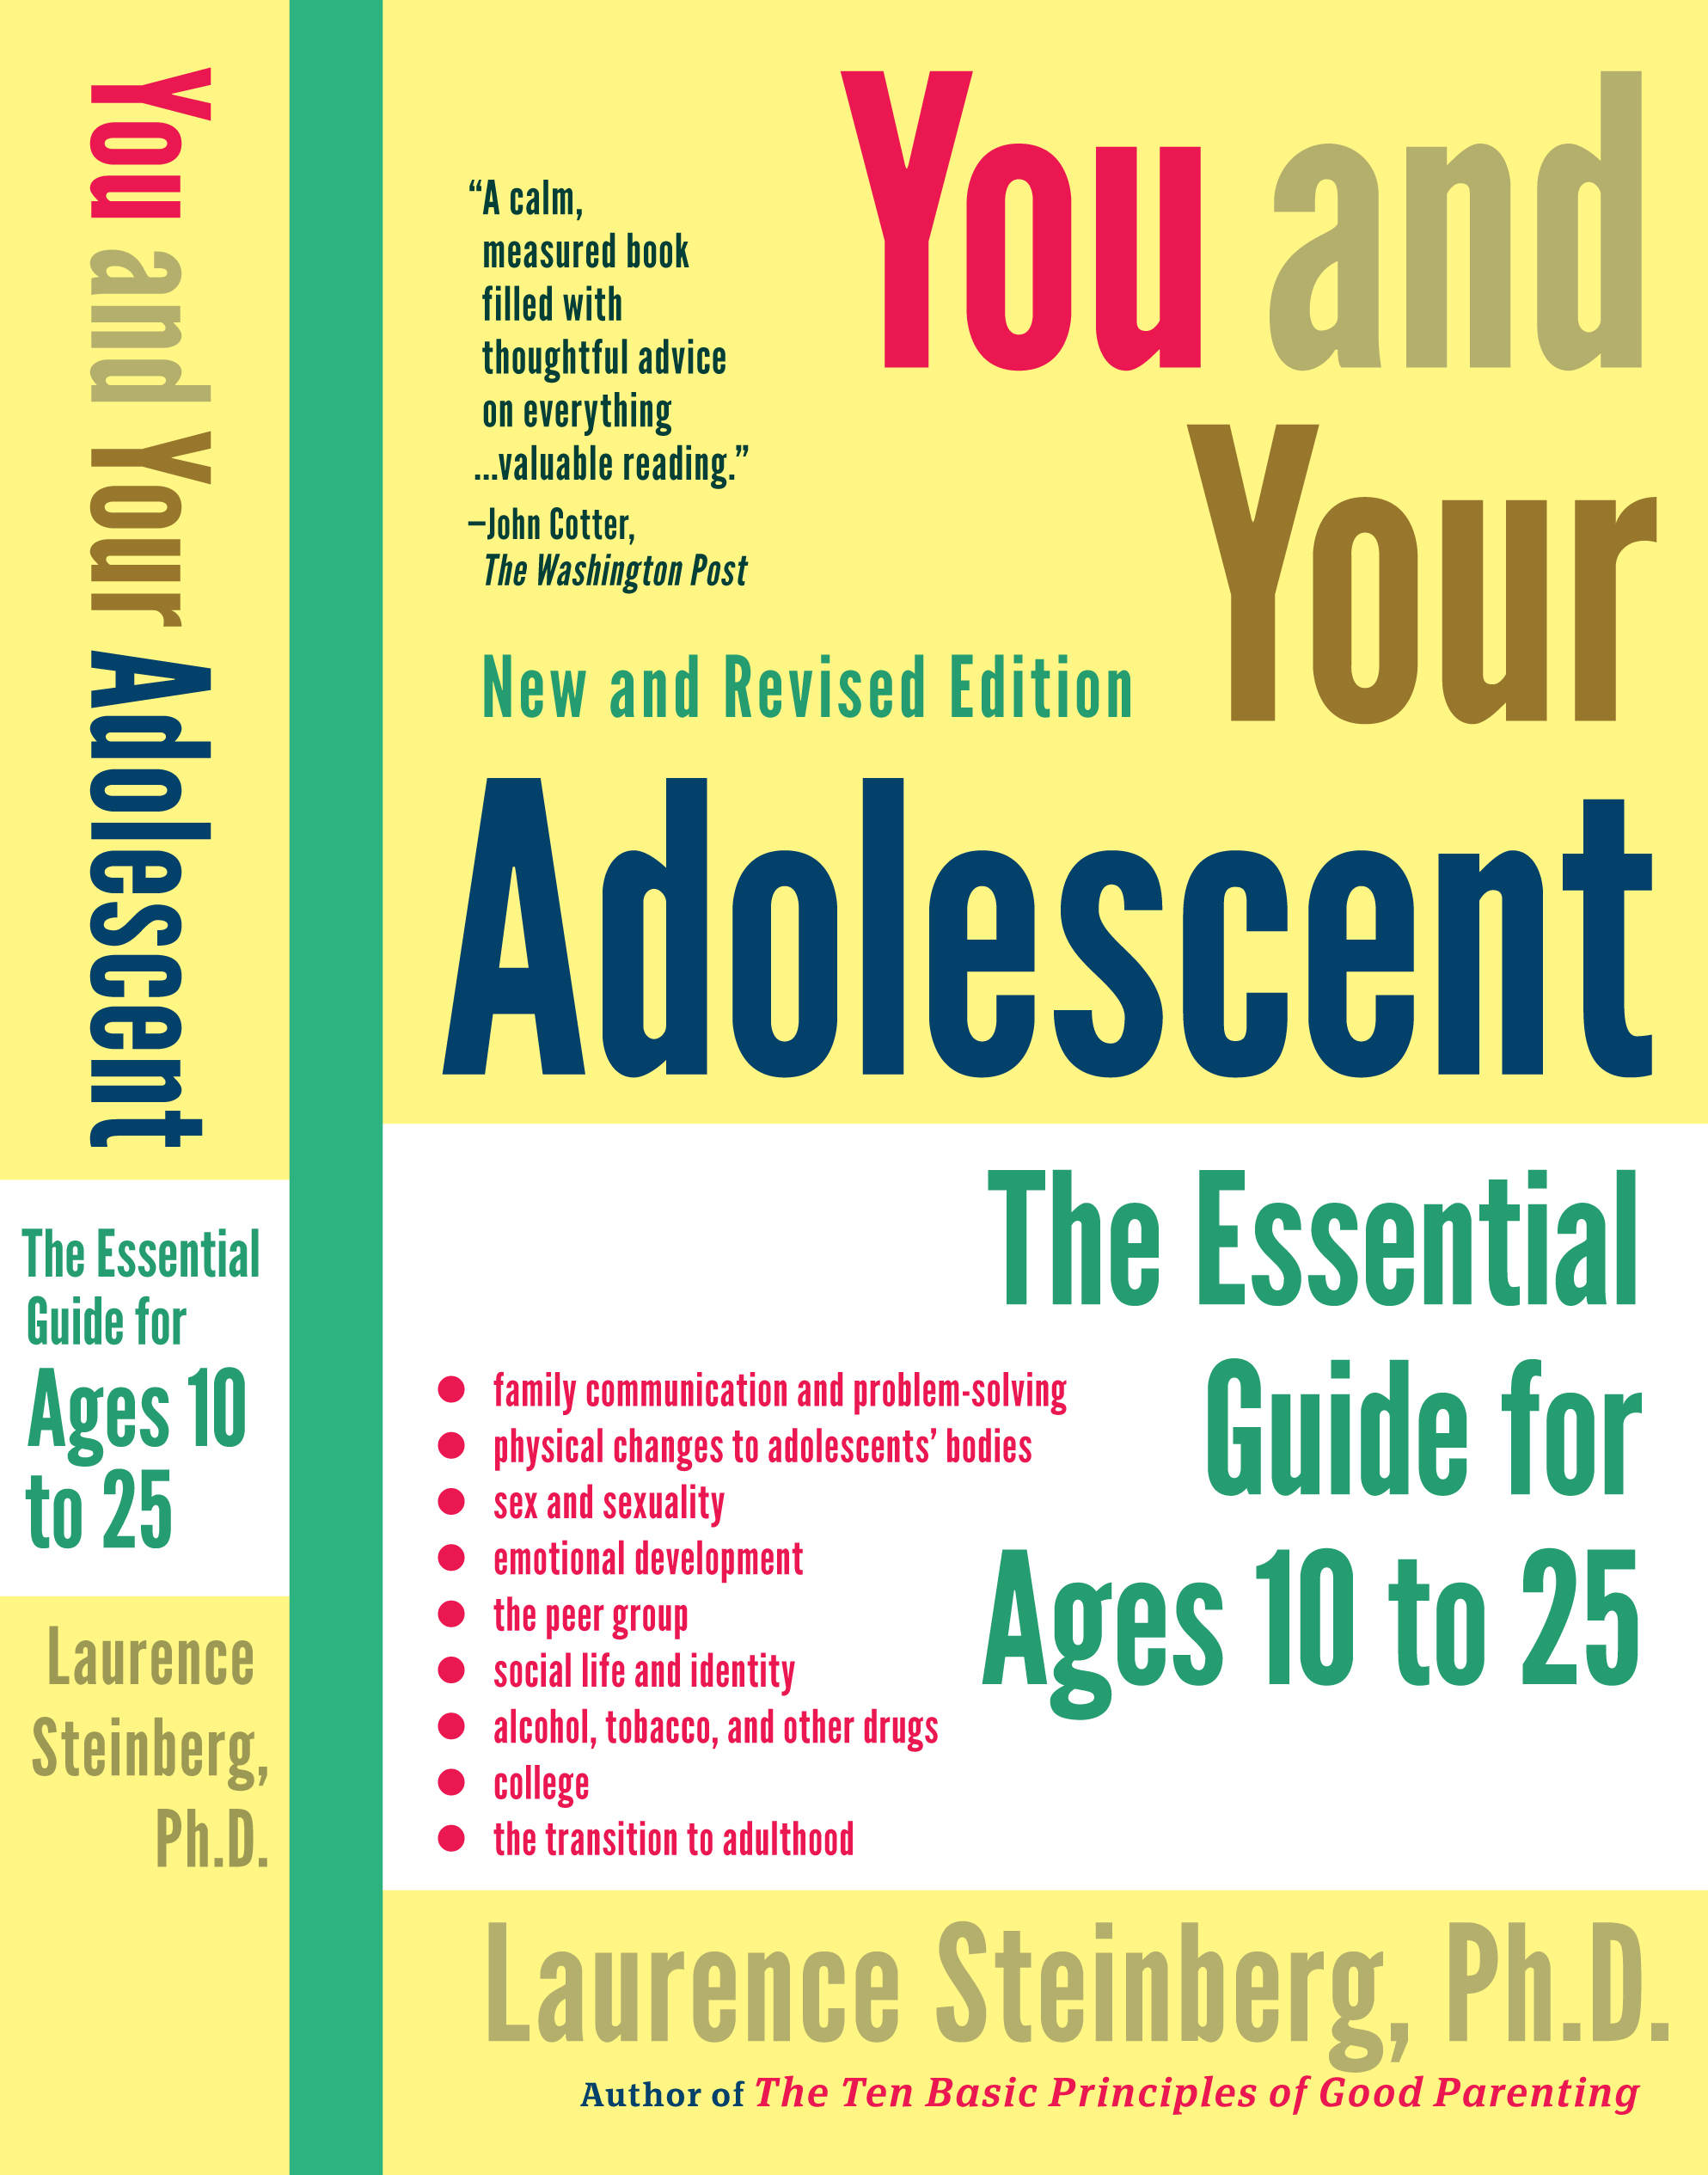 YOU-AND-YOUR-ADOLESCENT-tpb-f&s-ss6.jpg